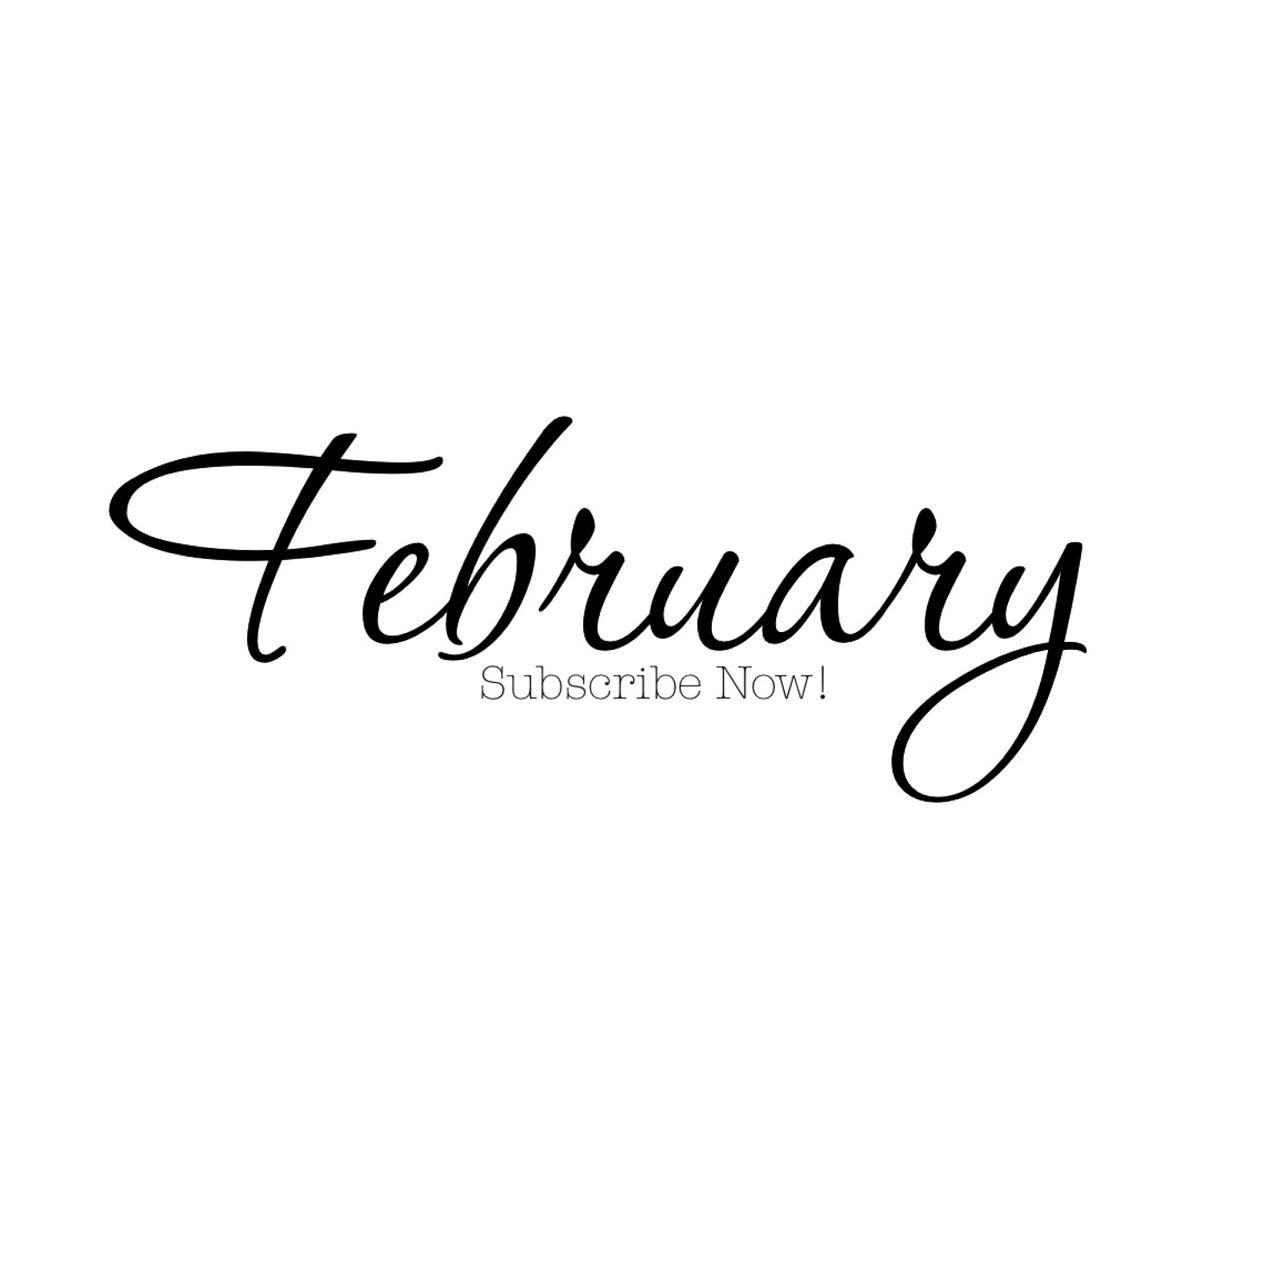 Happy Monday & Happy February! My very first Monthly Newsletter was sent this morning (Subscribes check your emails!) Stay up-to-date on the adventures I've coming by subscribing now- Get ready for a little surprise! S H E